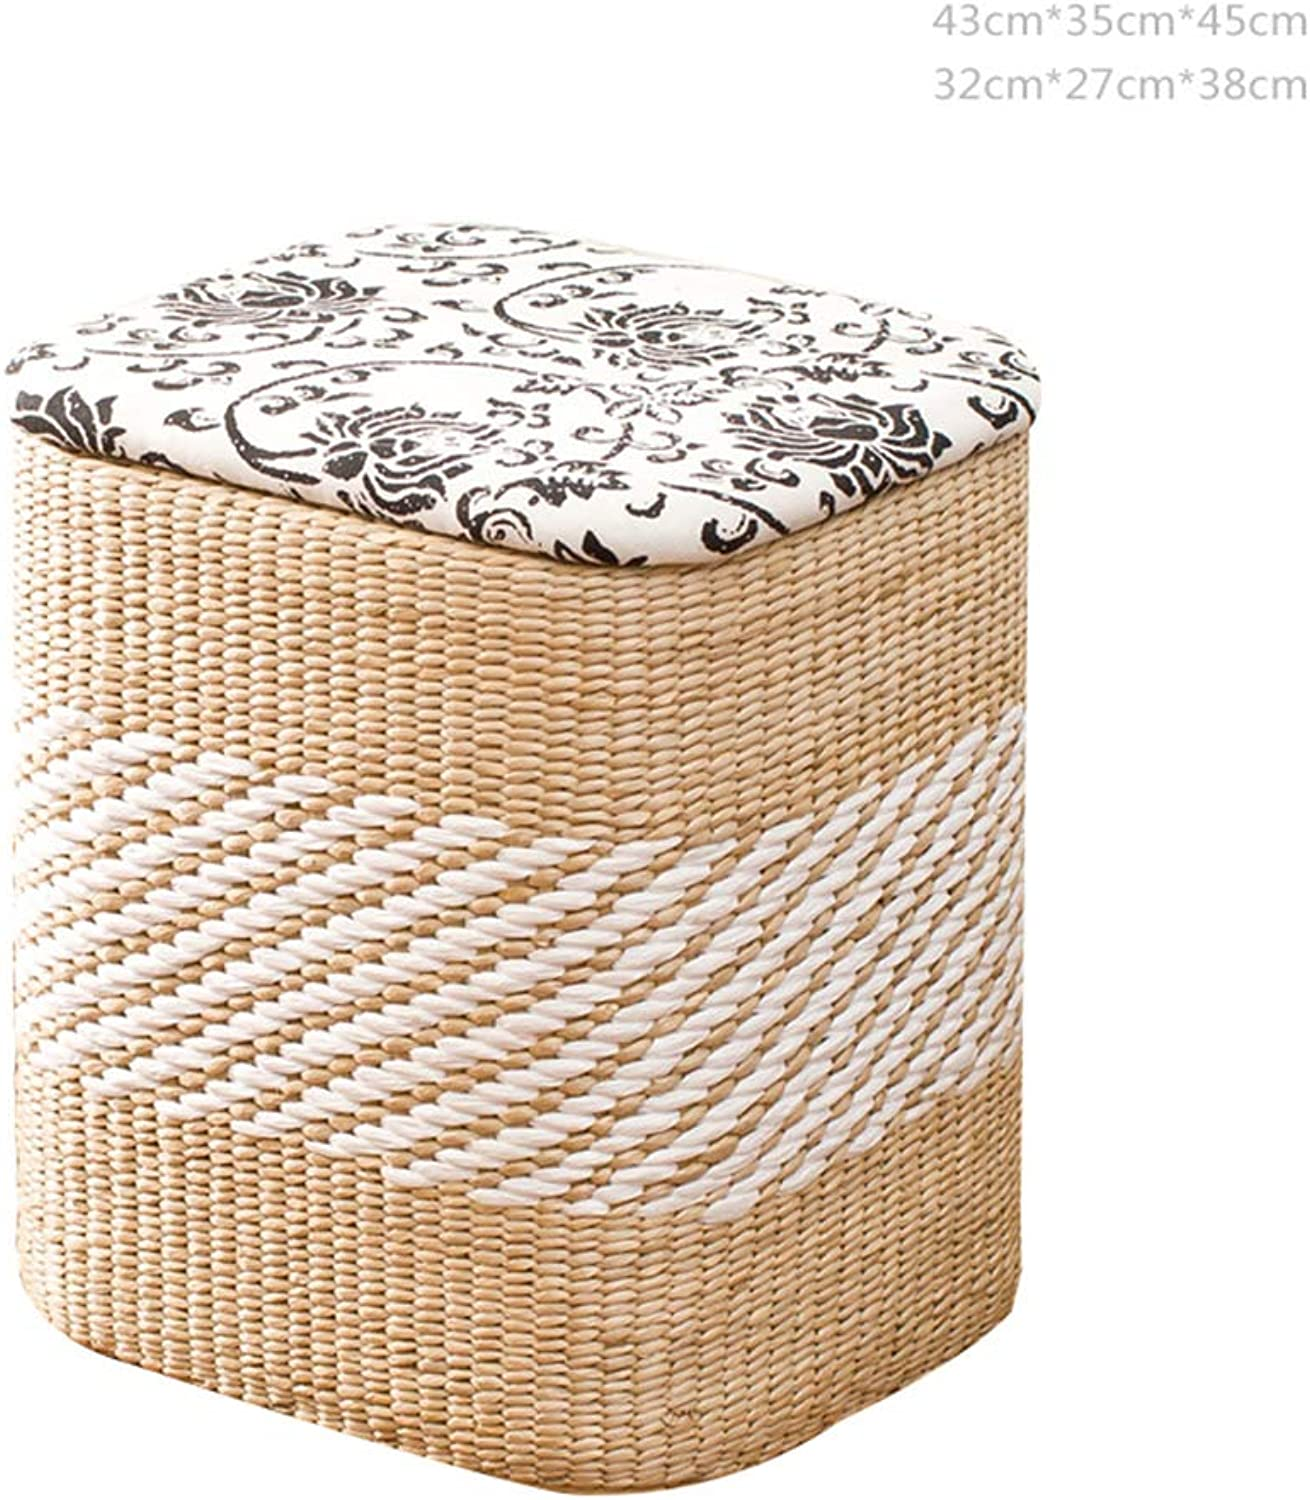 ZHAOYONGLI Stools Footstool Step Stool Vine Straw Storage Sort Out Covered Wholesale Footrest Sofa Can Sit Toy Creative Solid Durable Long Lasting (color   A-Square-Cloth, Size   S)